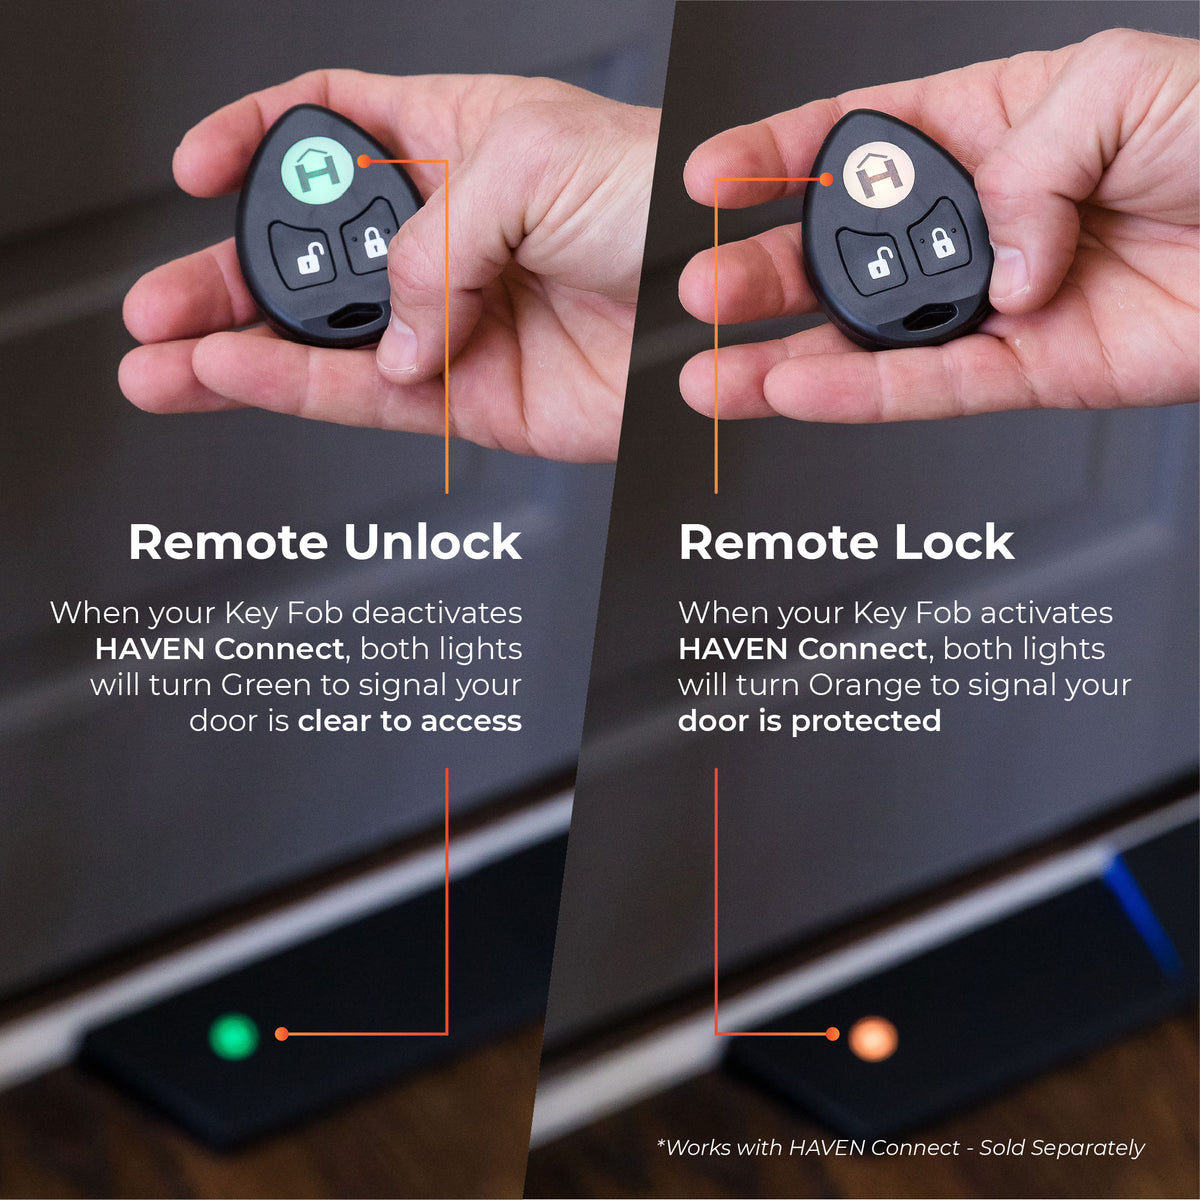 Lock and unlock colors on the fob and havenlock device clearly indicate if the door is armed or not